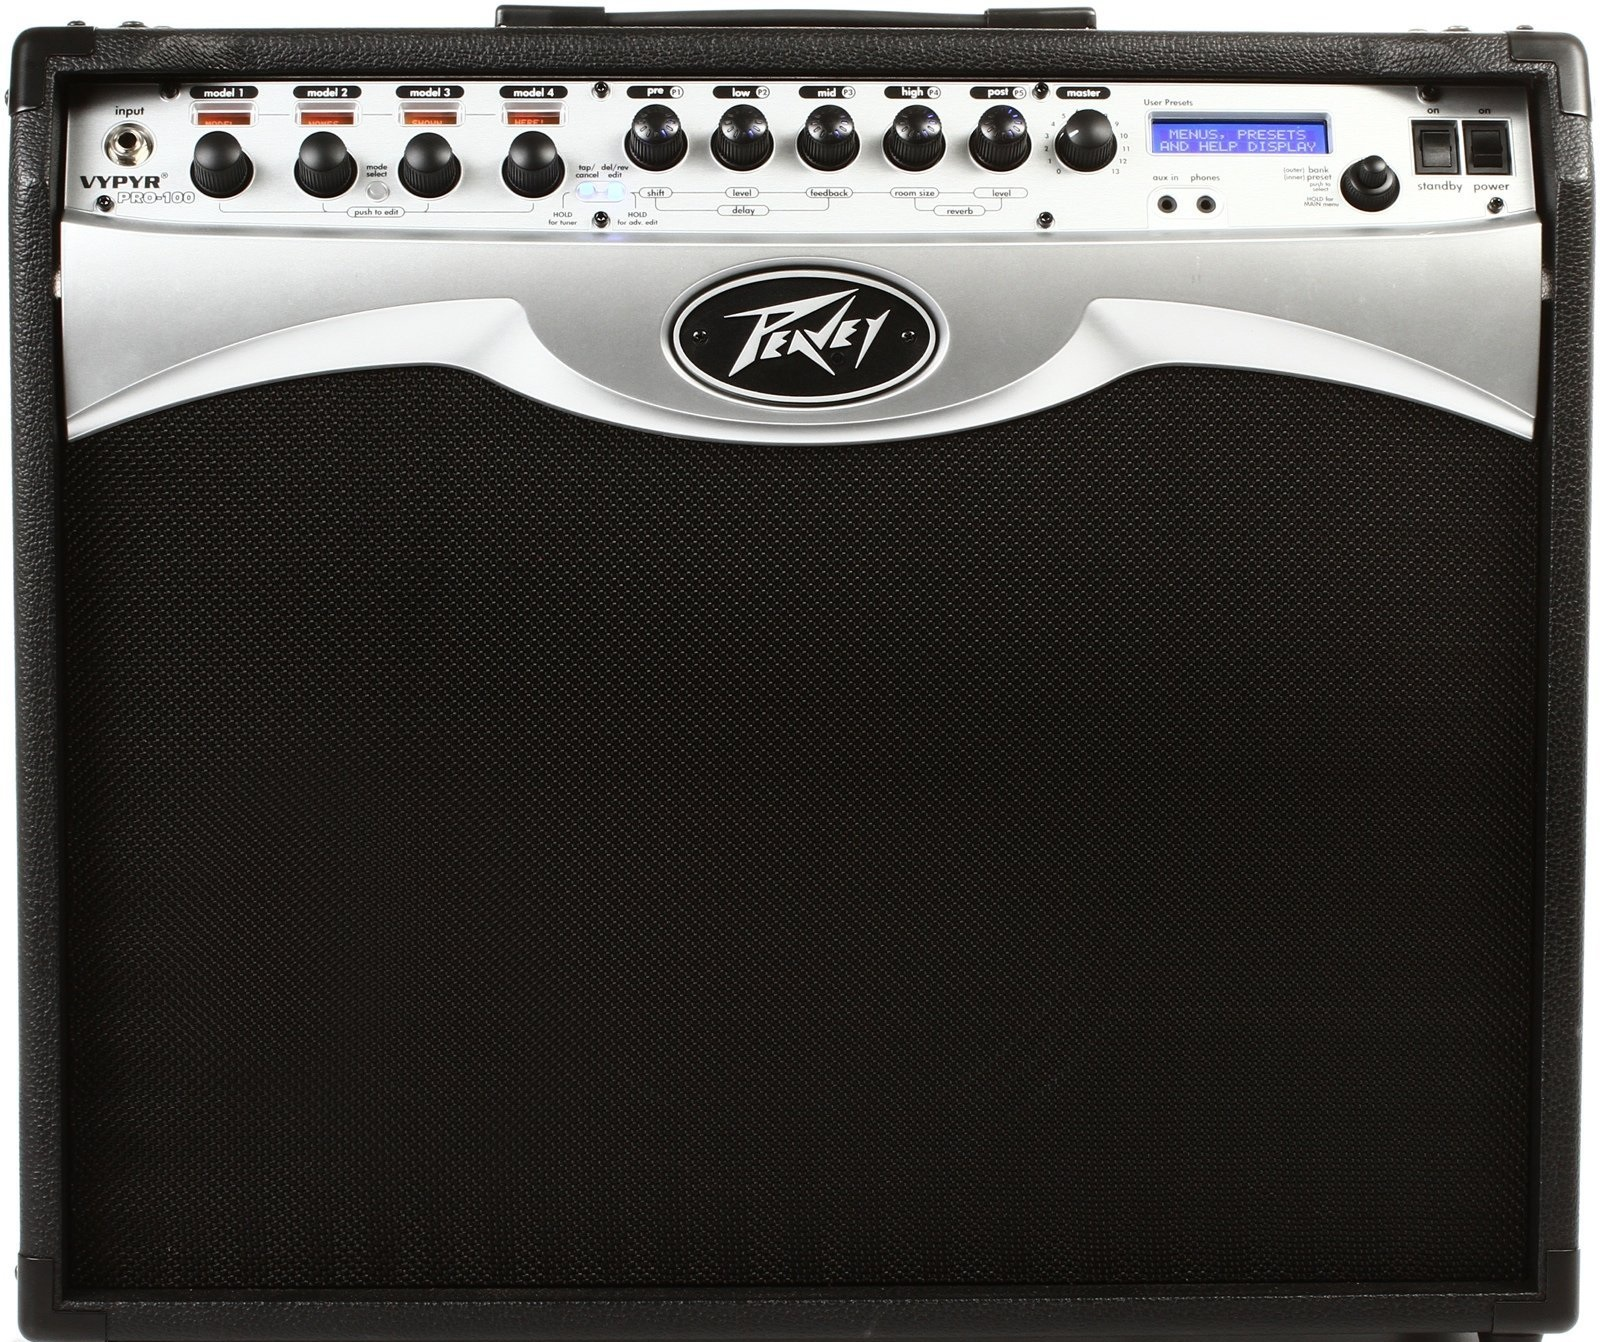 peavey vypyr pro 100 guitar amplifier reviewed by topguitar magazine. Black Bedroom Furniture Sets. Home Design Ideas